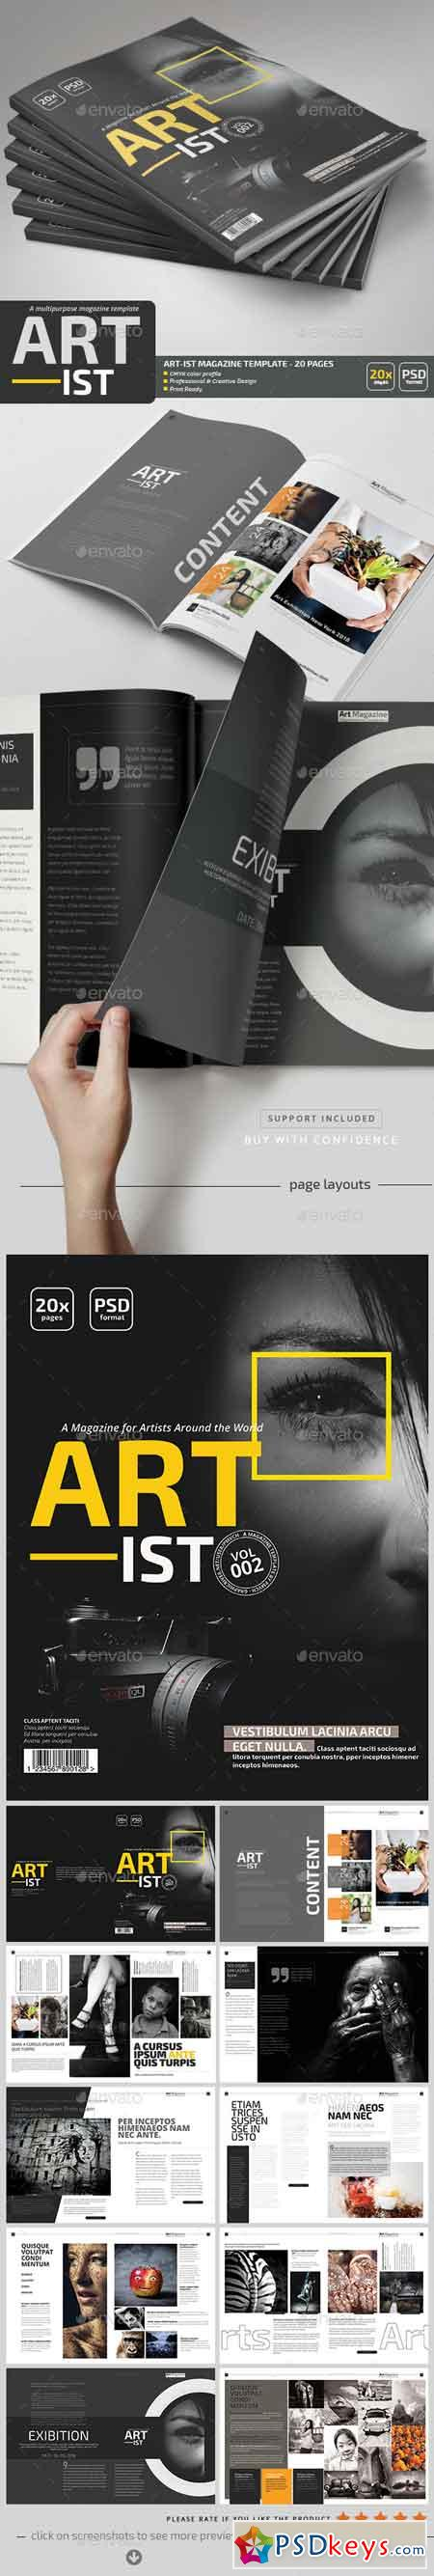 Art-ist Magazine Template V.2 20185377